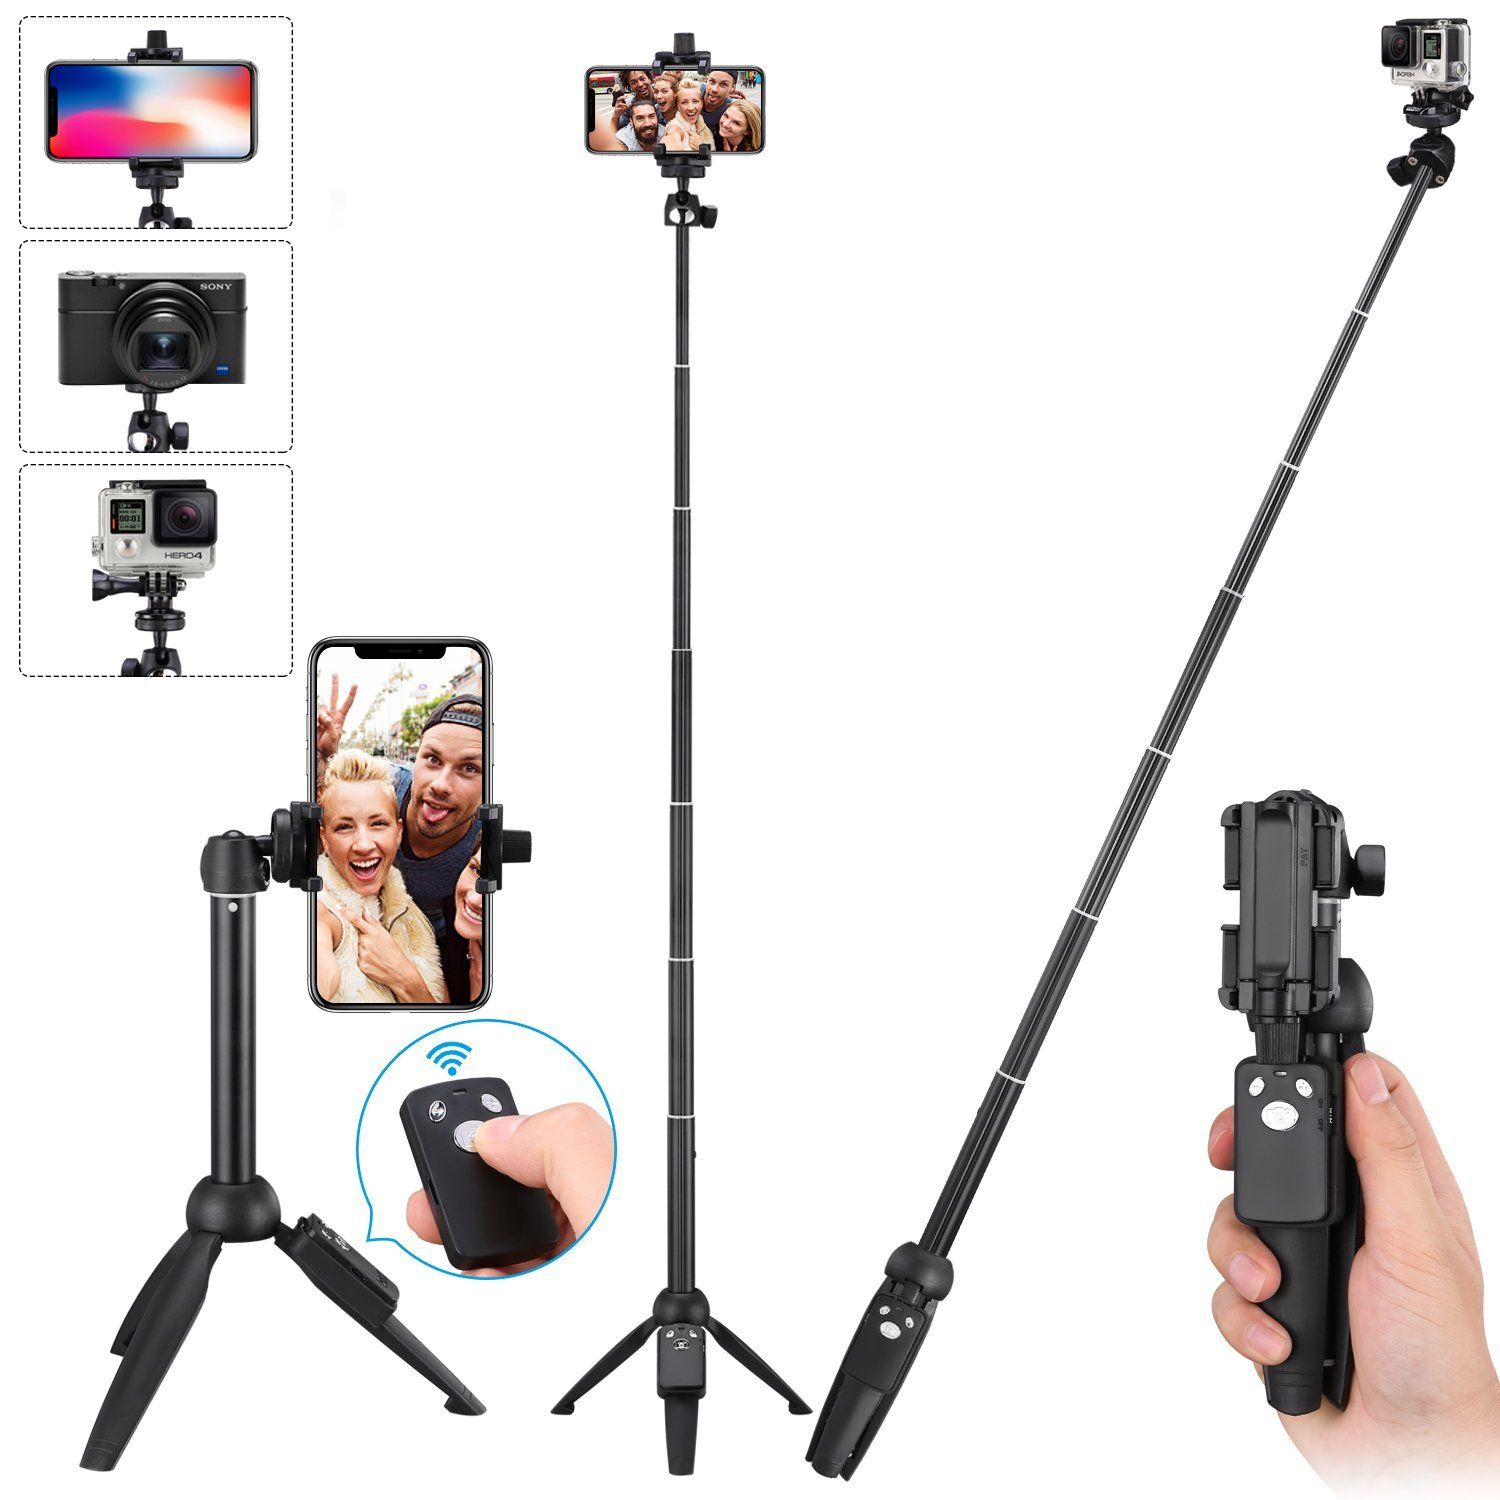 Apsung Selfie Stick Tripod, 40-Inch Extendable iPhone Tripod with Wireless Remote, Portable Selfie Stick for iPhone X/iPhone 8/8 Plus/iPhone 7/7 Plus/Android/Gopro/Digital camera,Gopro Adapter Include